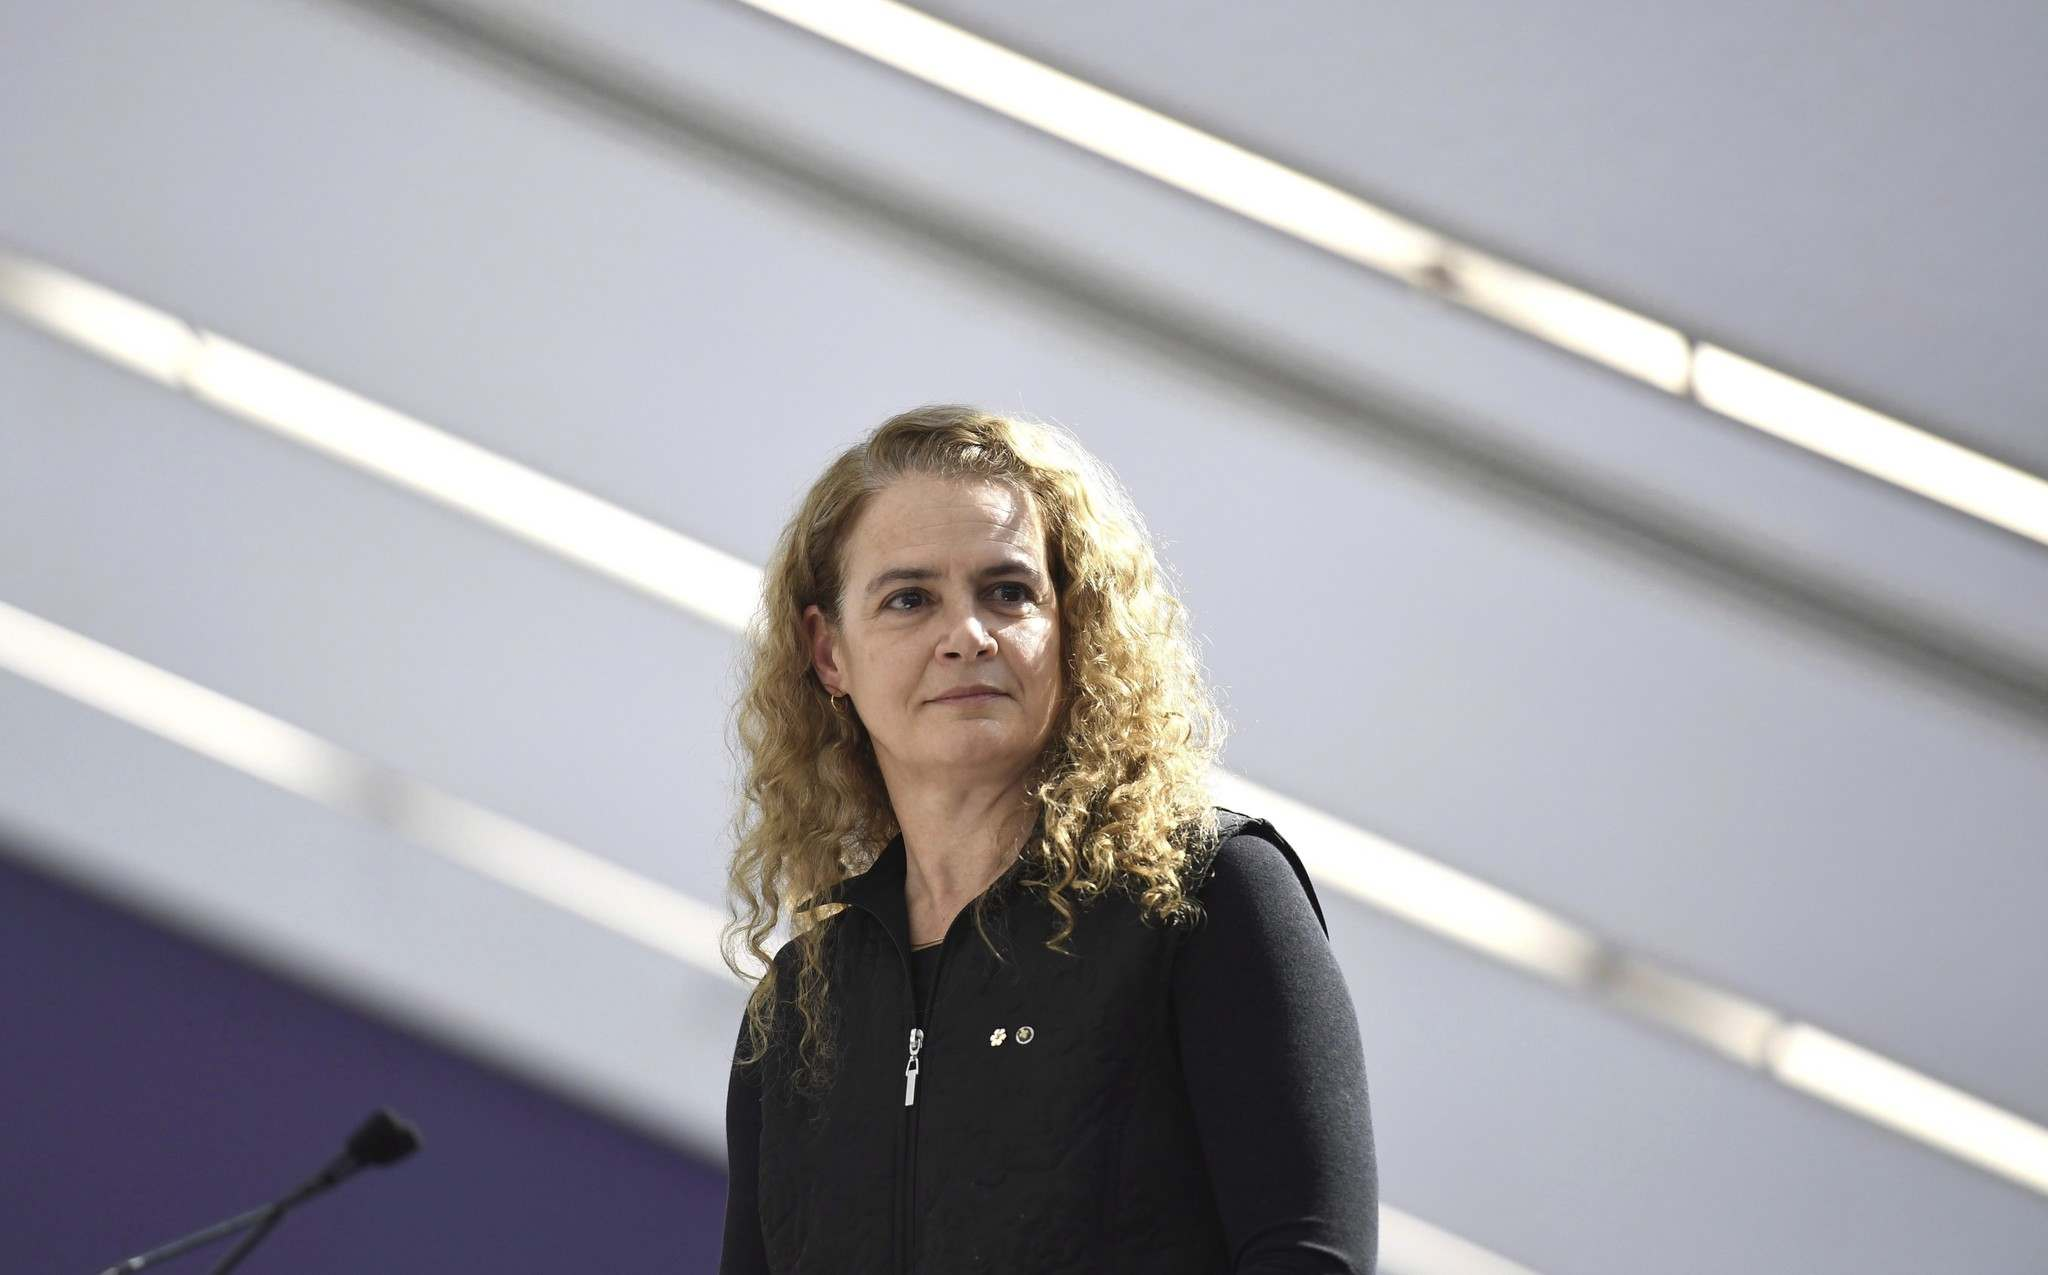 Governor General Julie Payette's predecessors have put their personal stamp on the duties they performed, but they have not sought to upend tradition by making the role something it isn't.